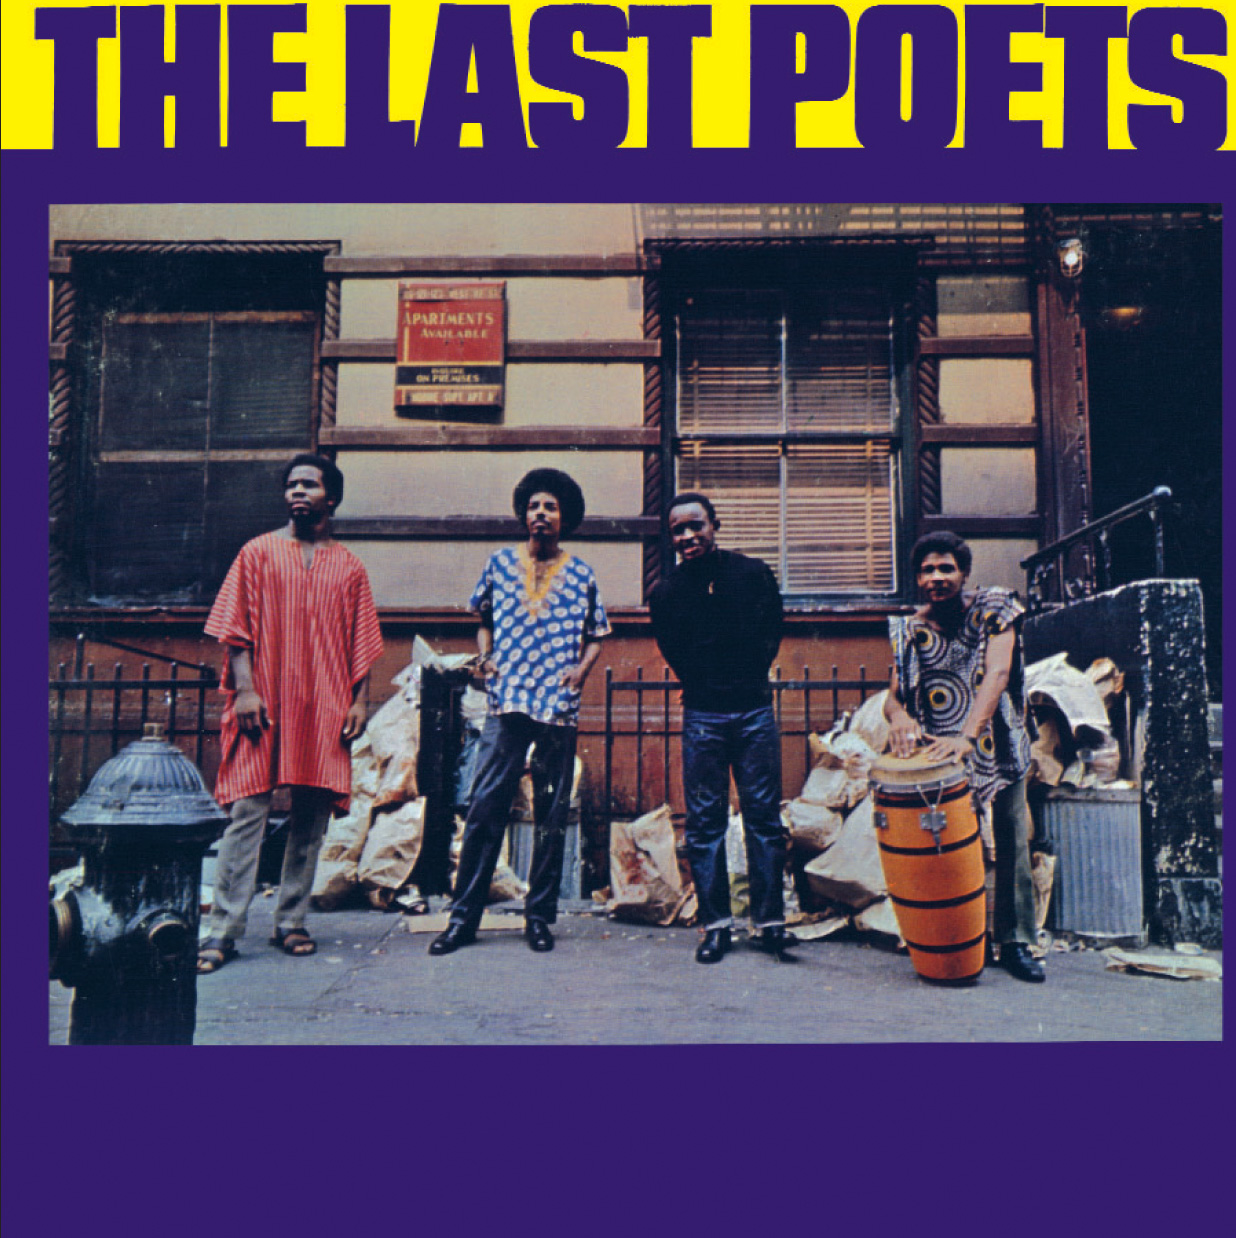 Black History Month: The Grandfather's Of Hip Hop, The Lost Poets